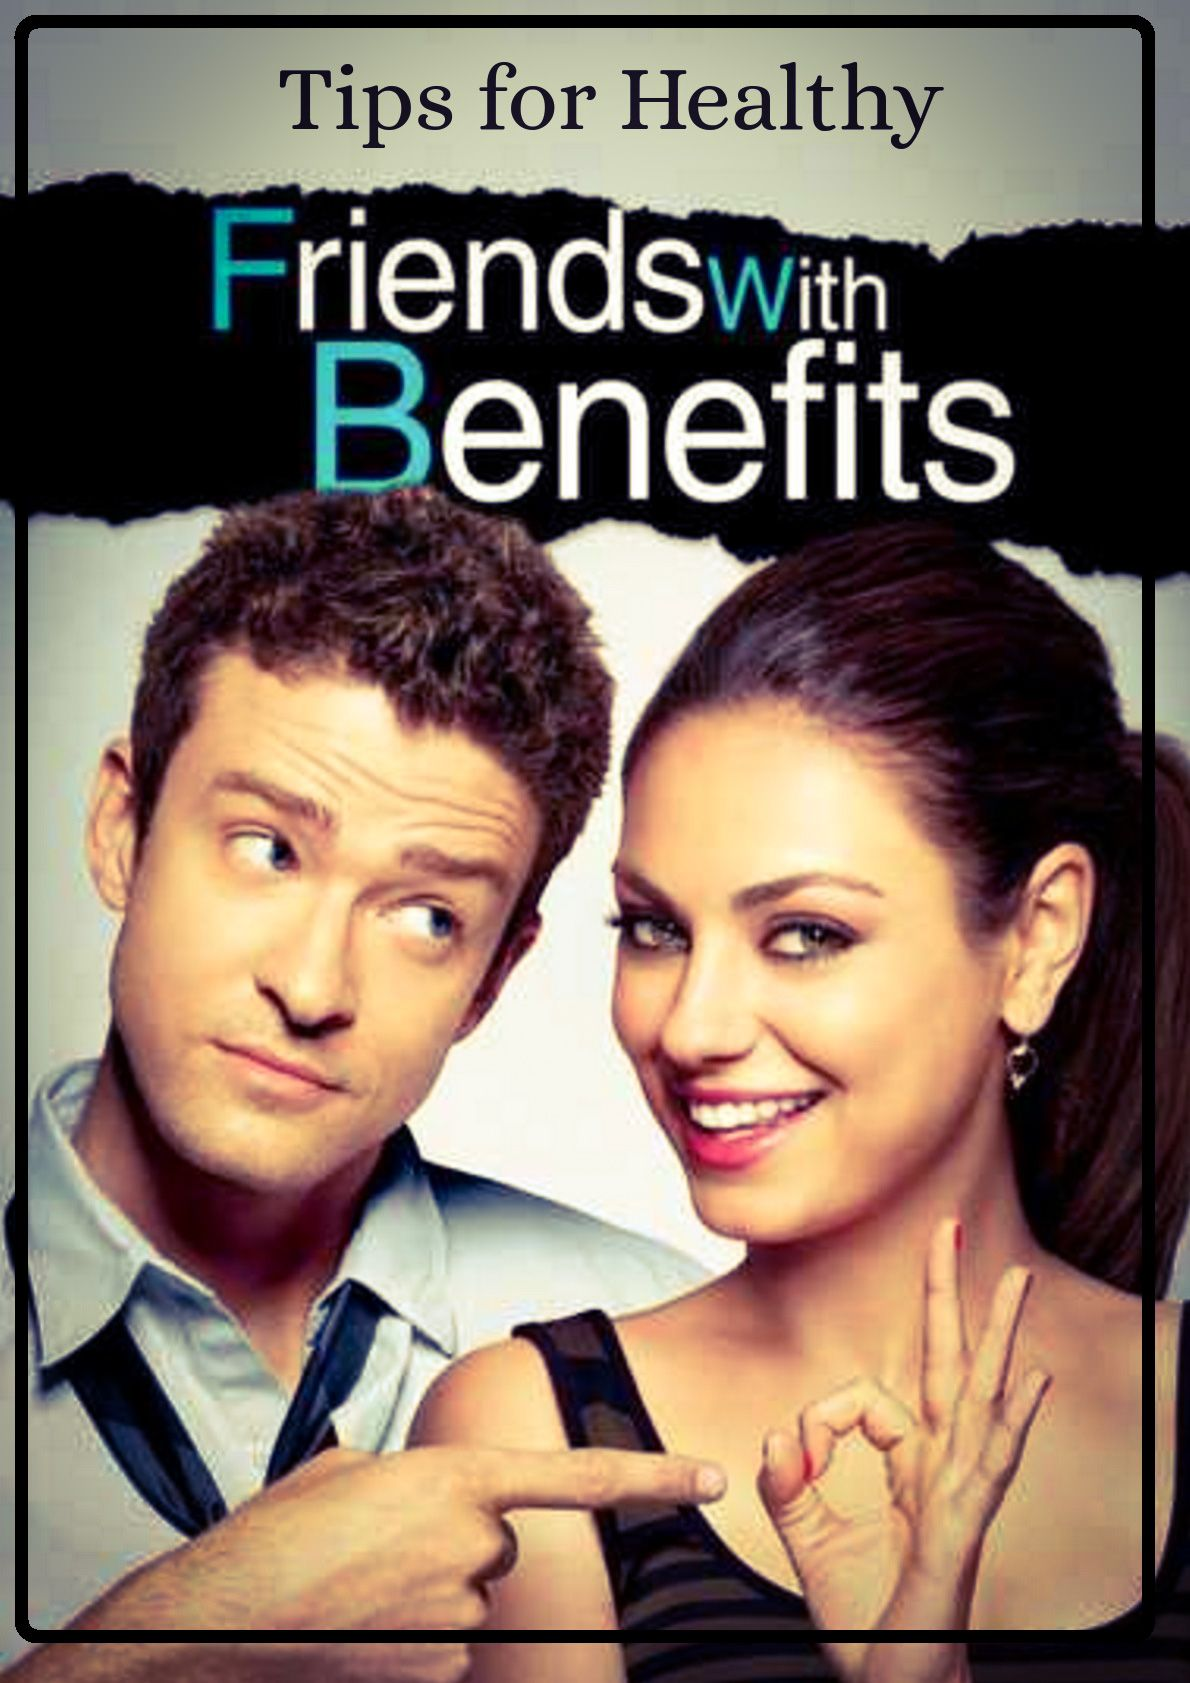 Starting a friends with benefits relationship